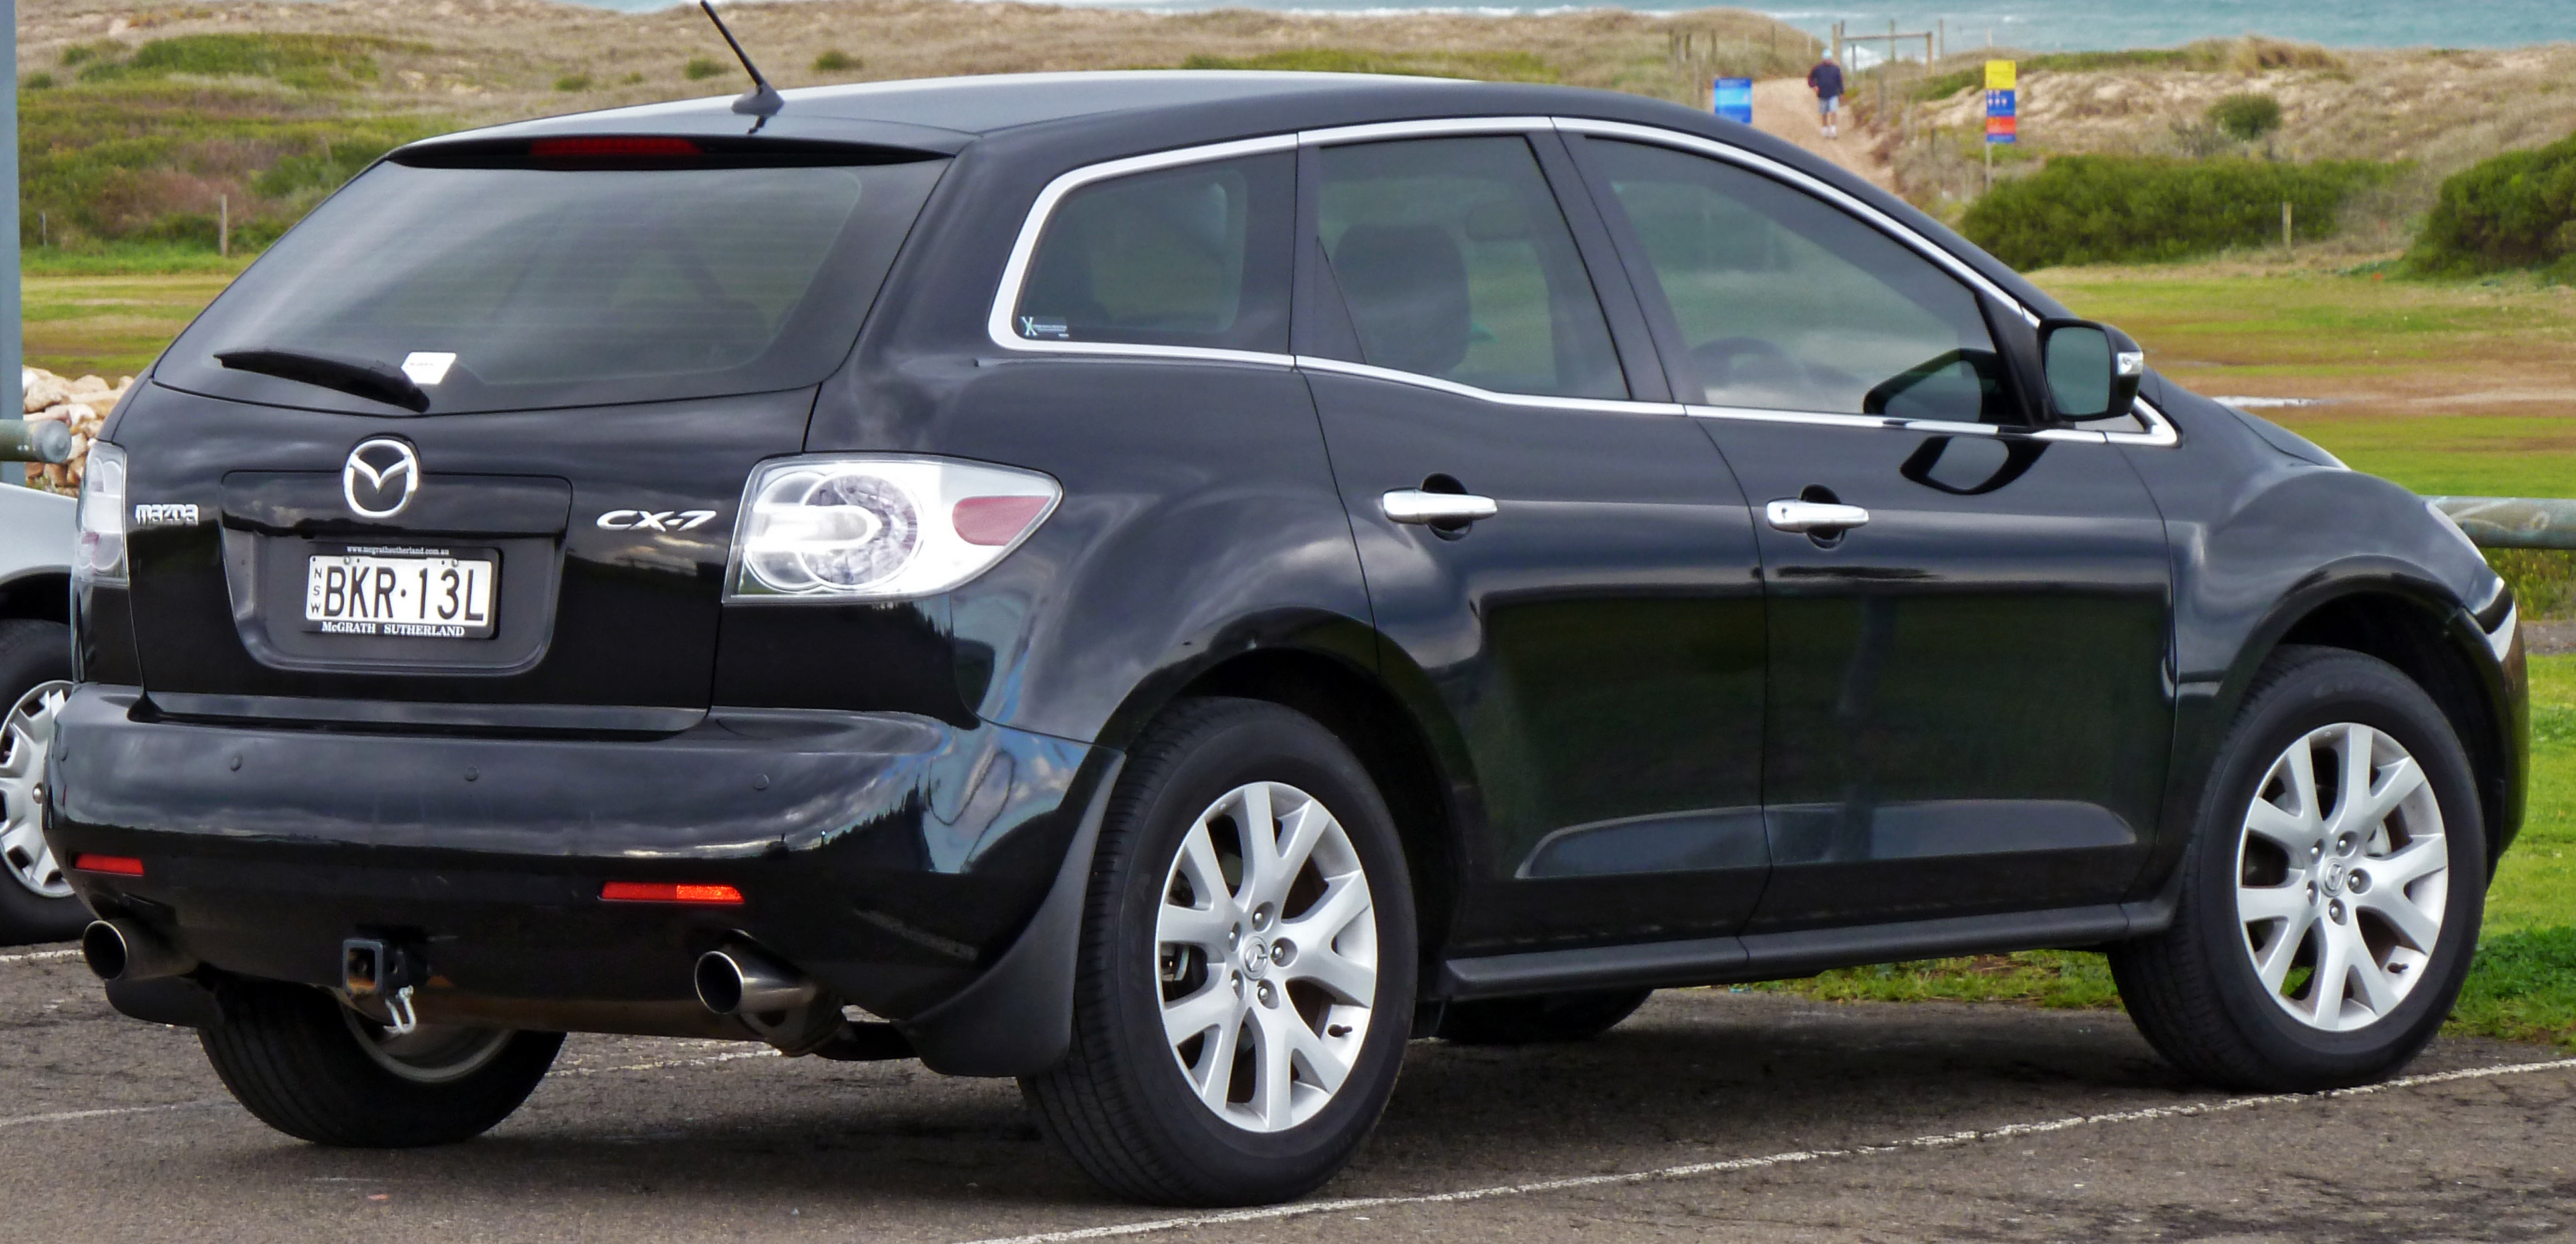 2009 mazda cx-7 - information and photos - zombiedrive